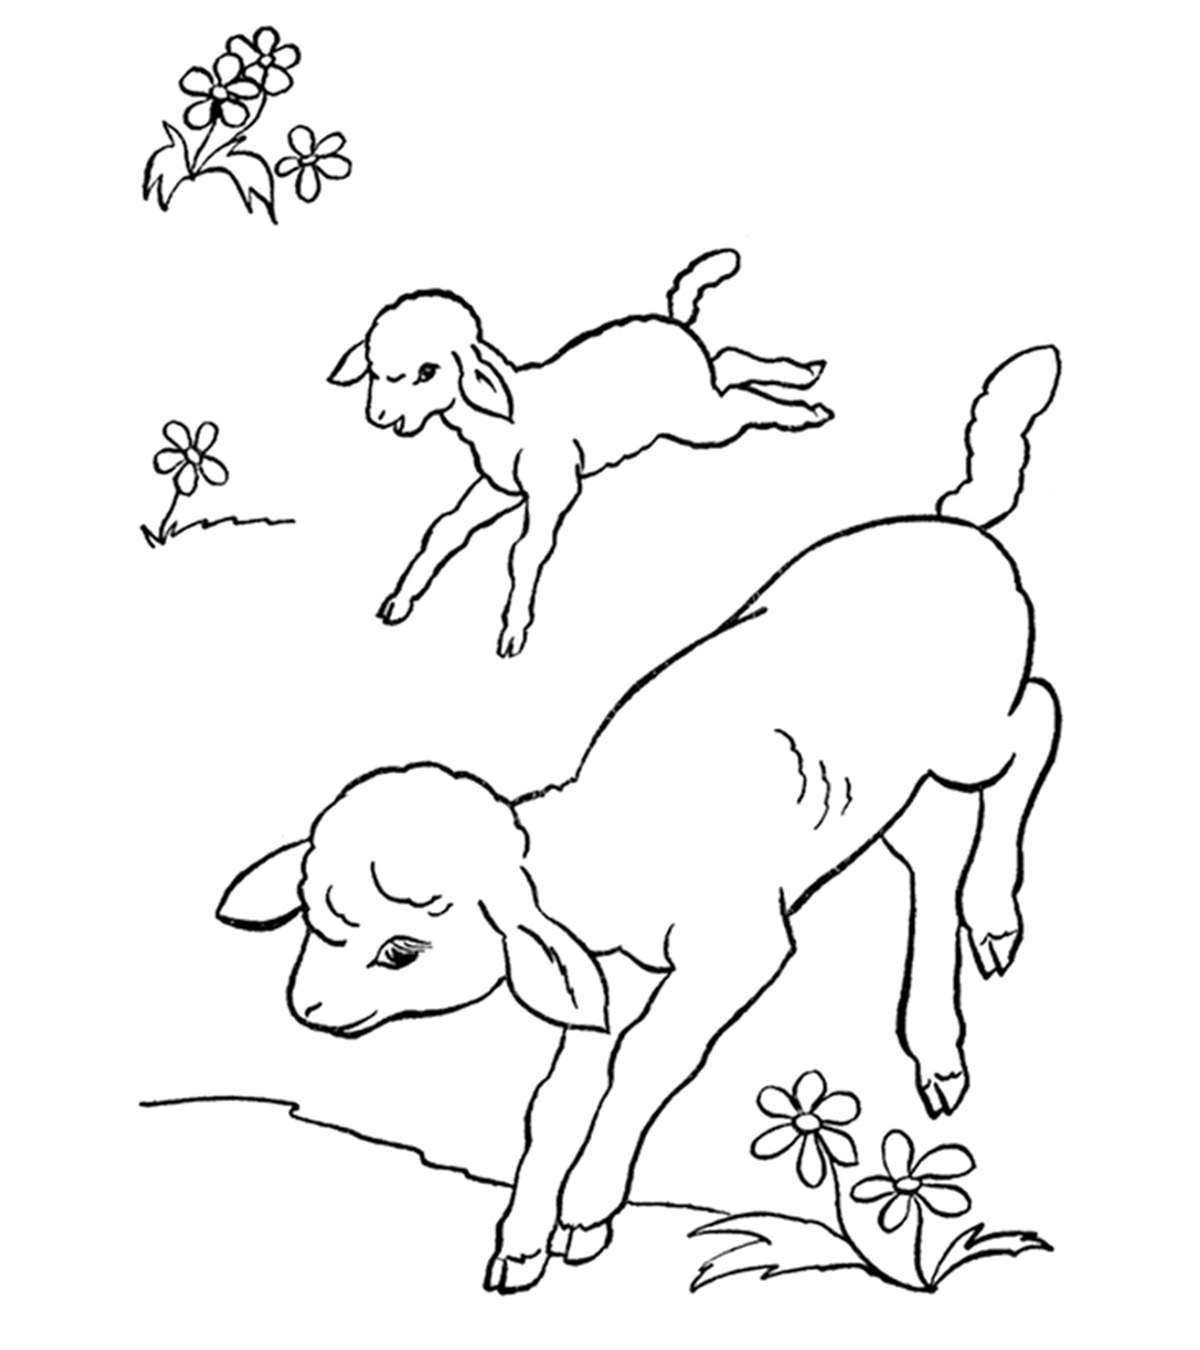 - Top 10 Farm Coloring Pages Your Toddler Will Love To Color